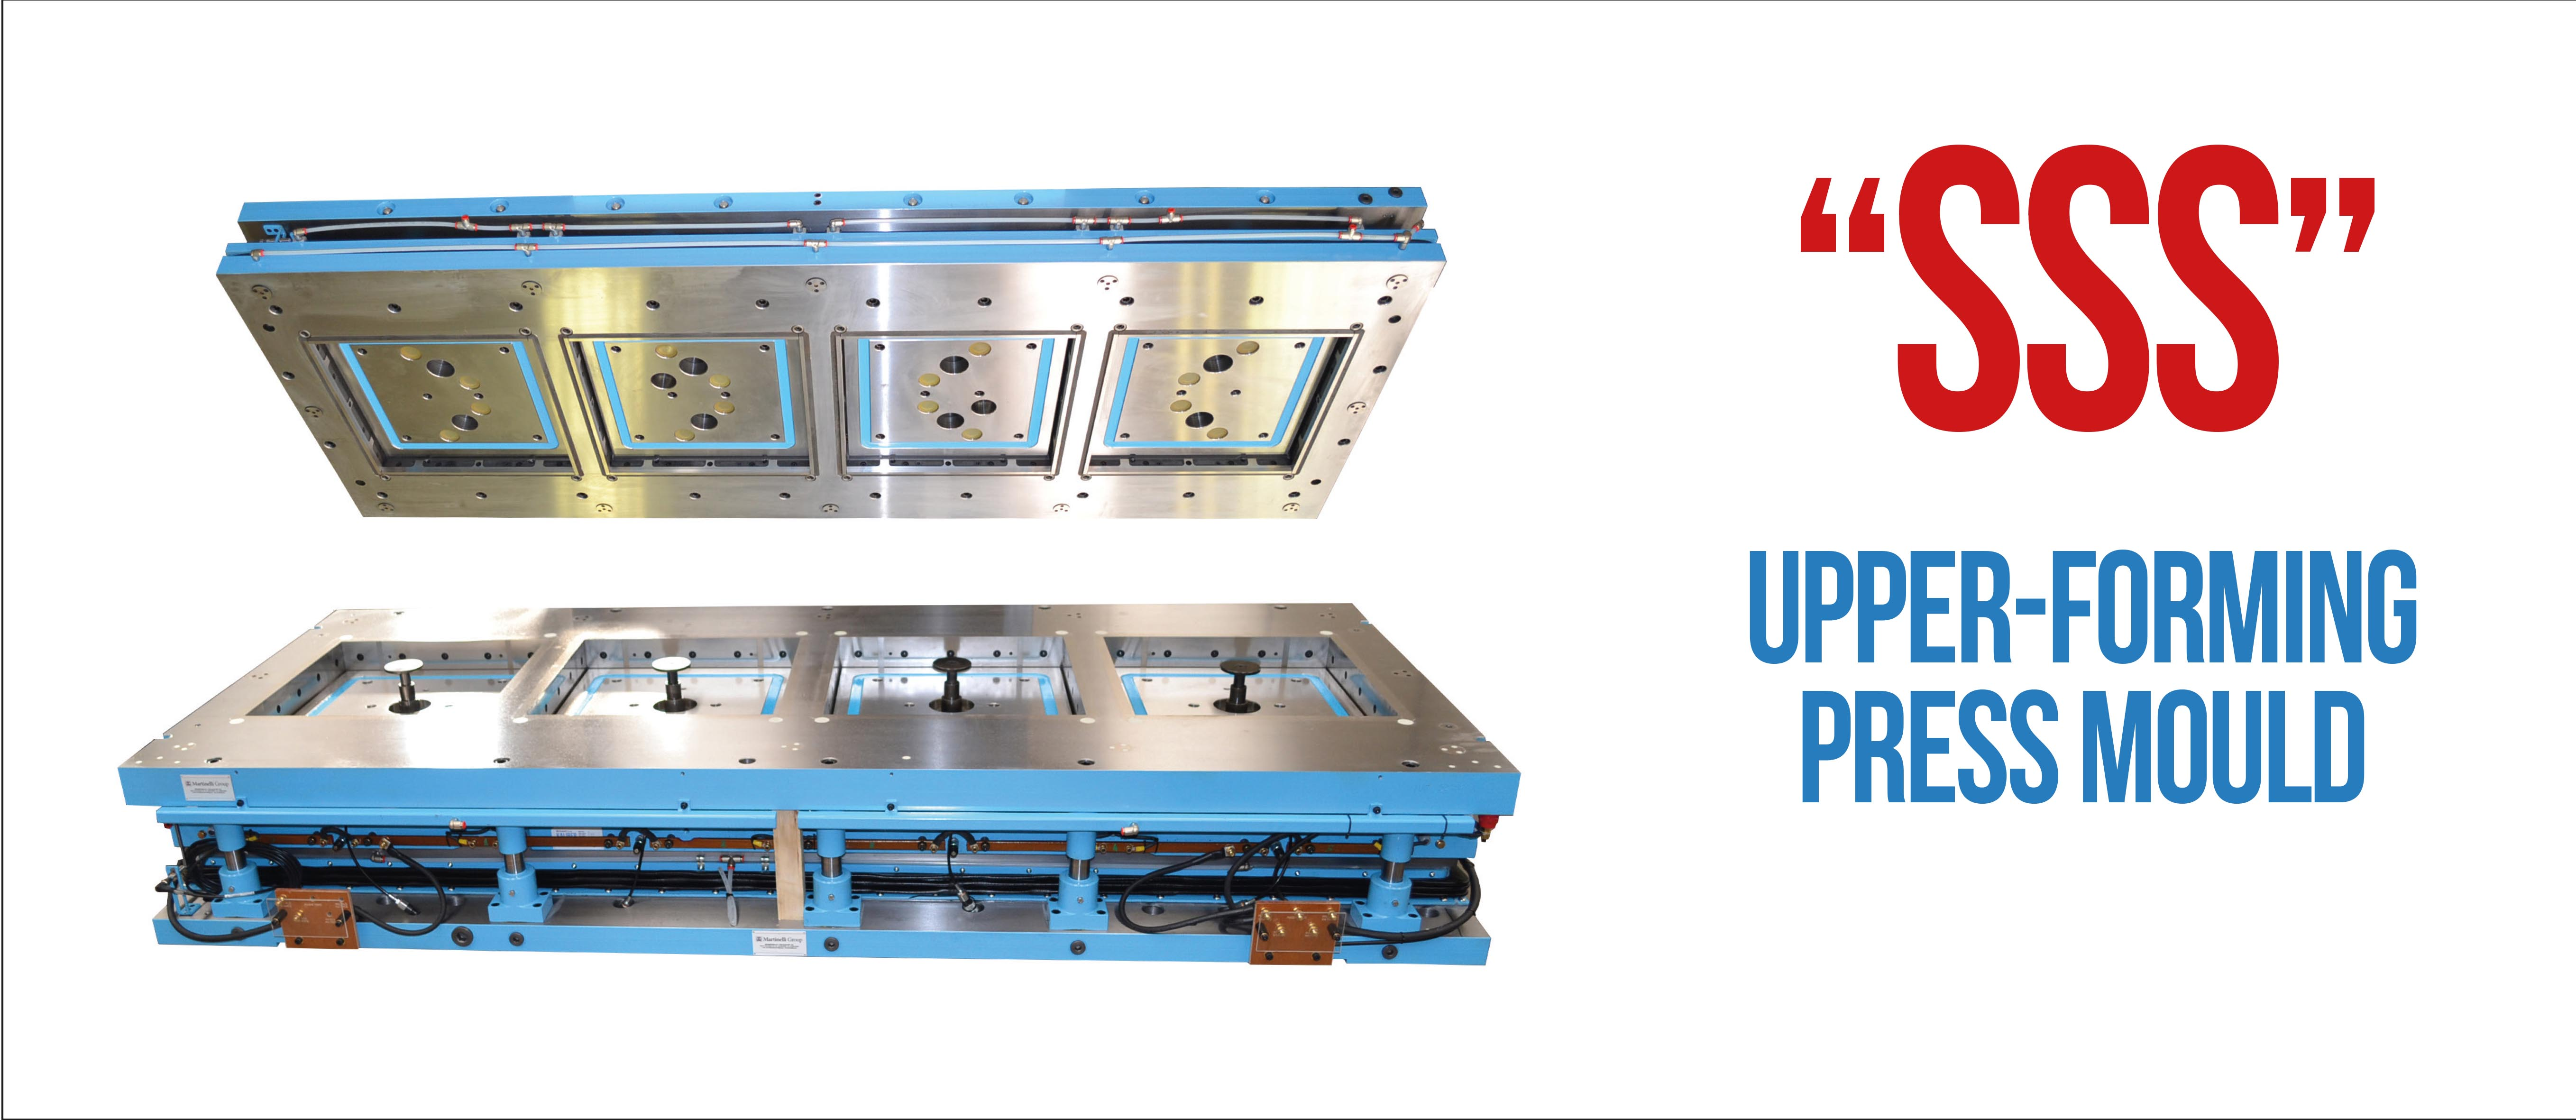 Martinelli Group - Moulds, Punches, Presses and loading devices for